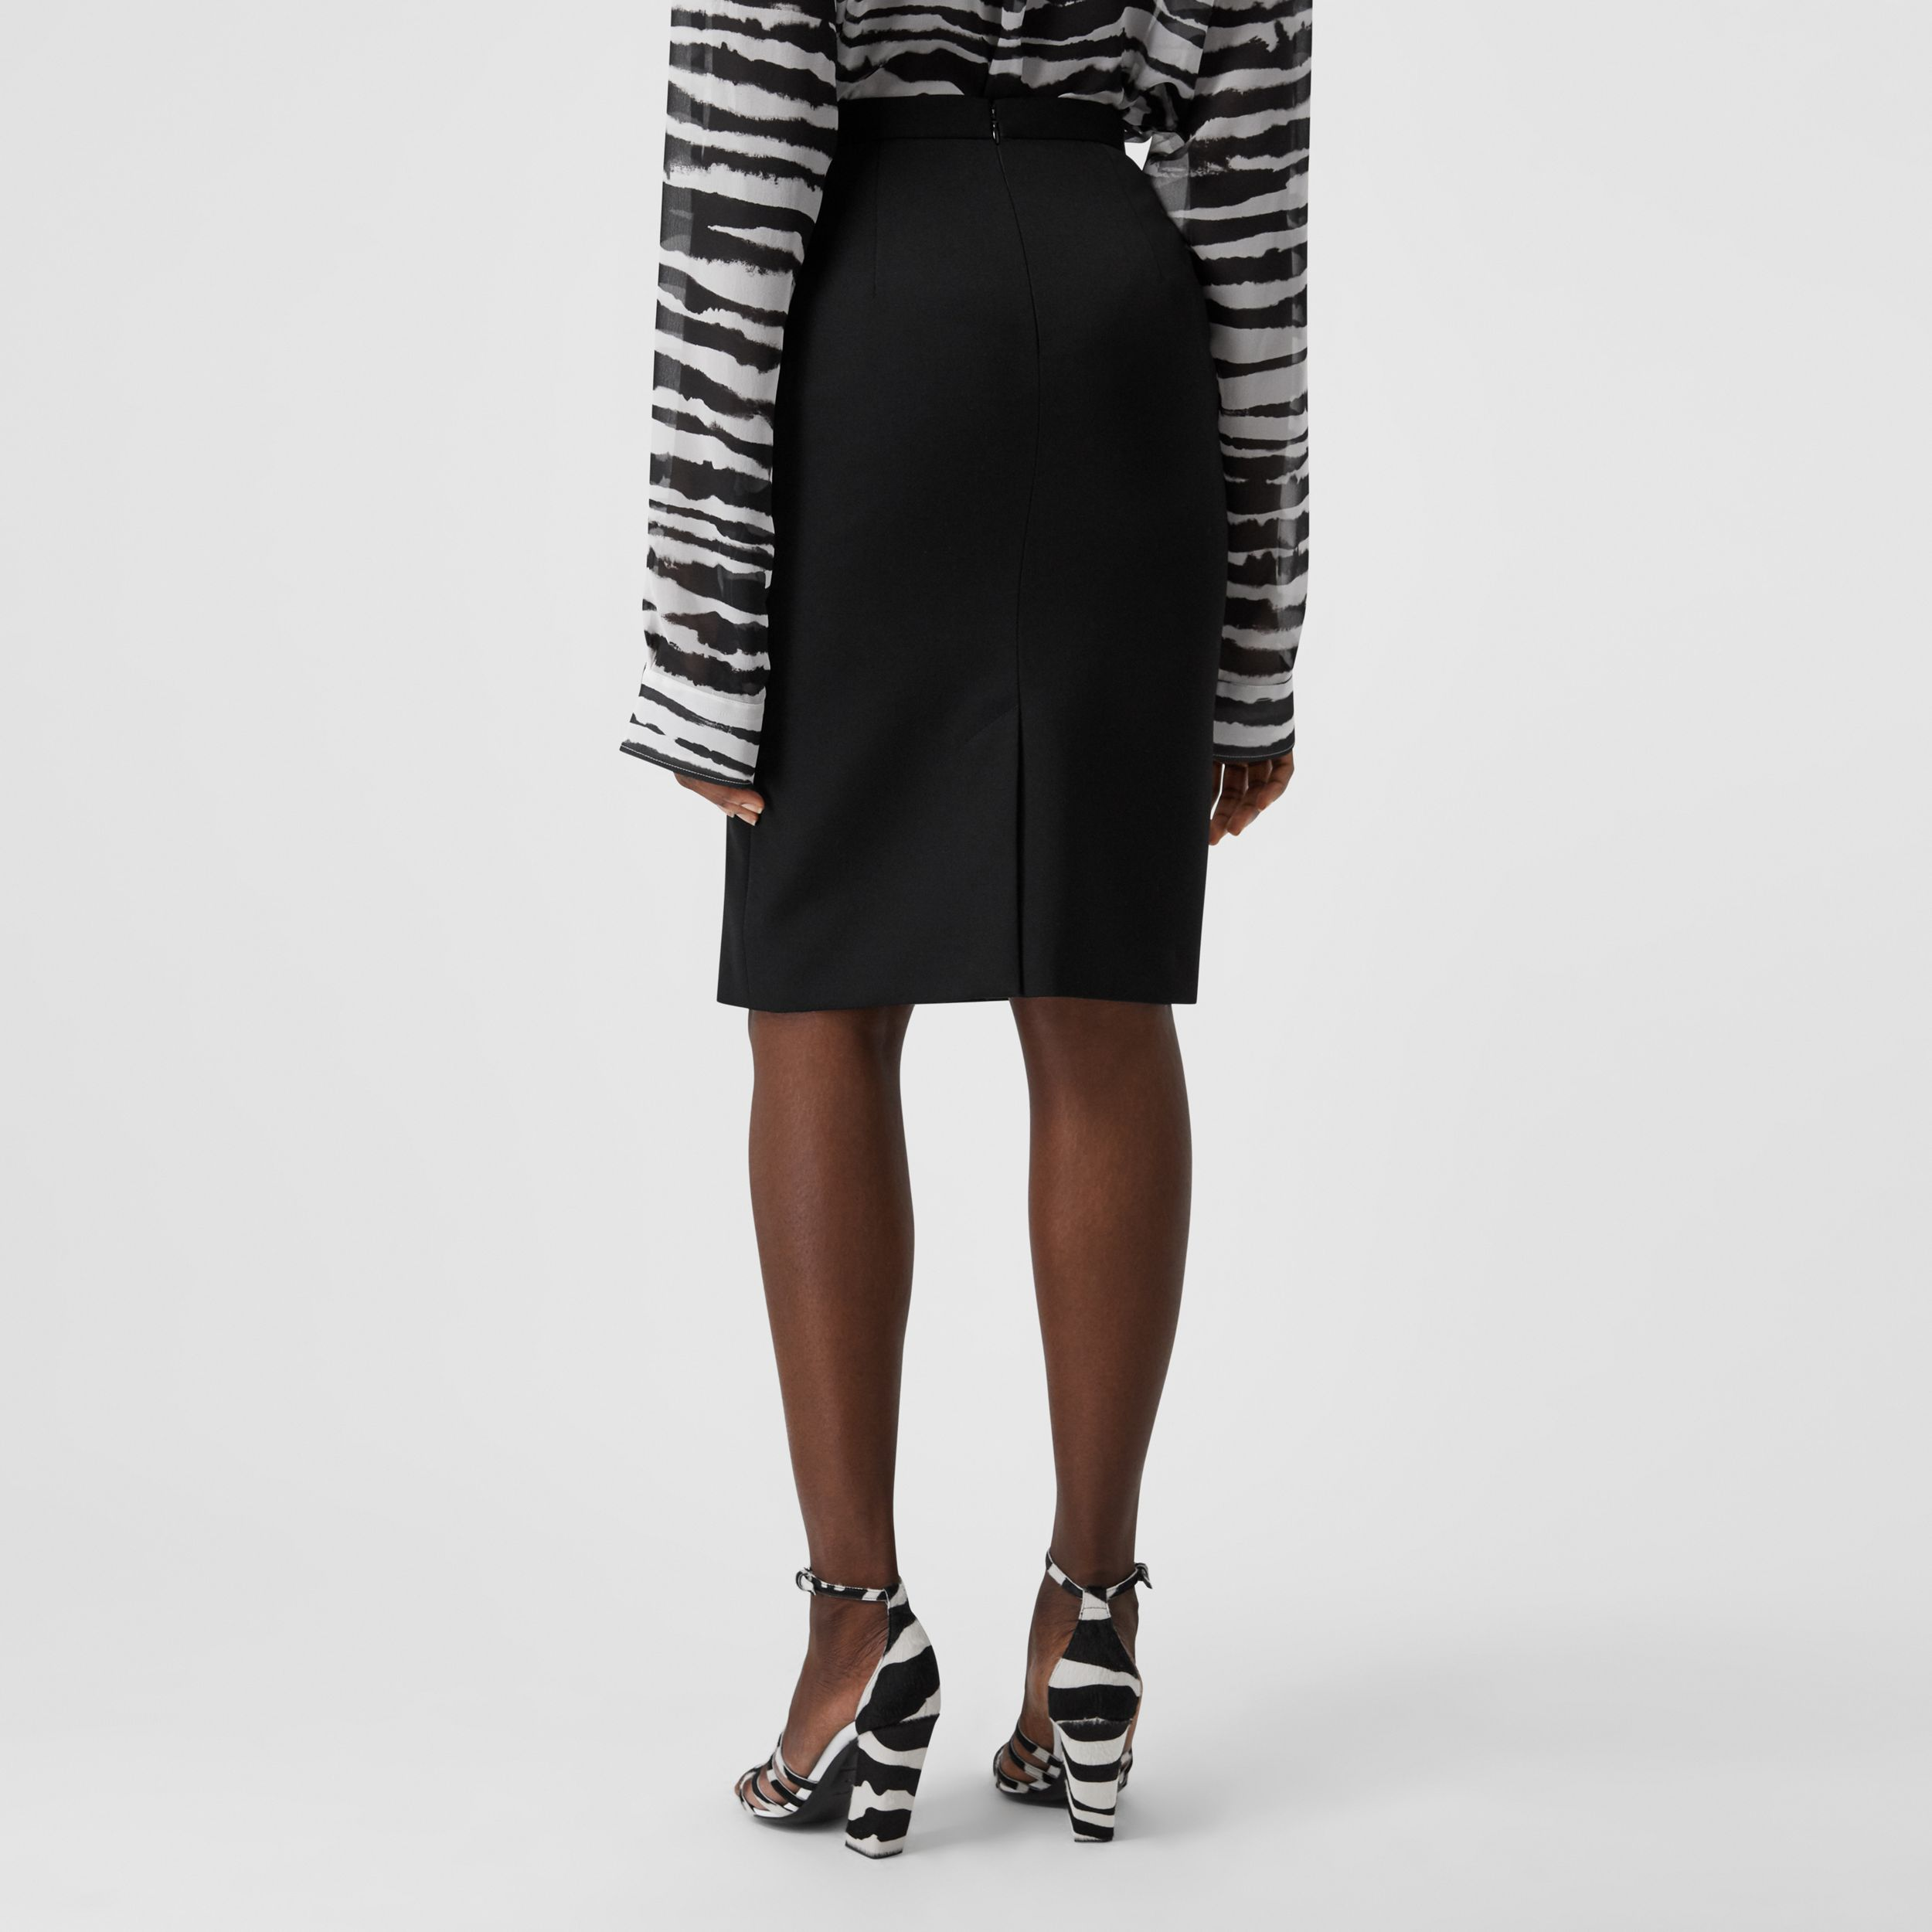 Grain De Poudre Wool Step-through Skirt in Black - Women | Burberry Australia - 3